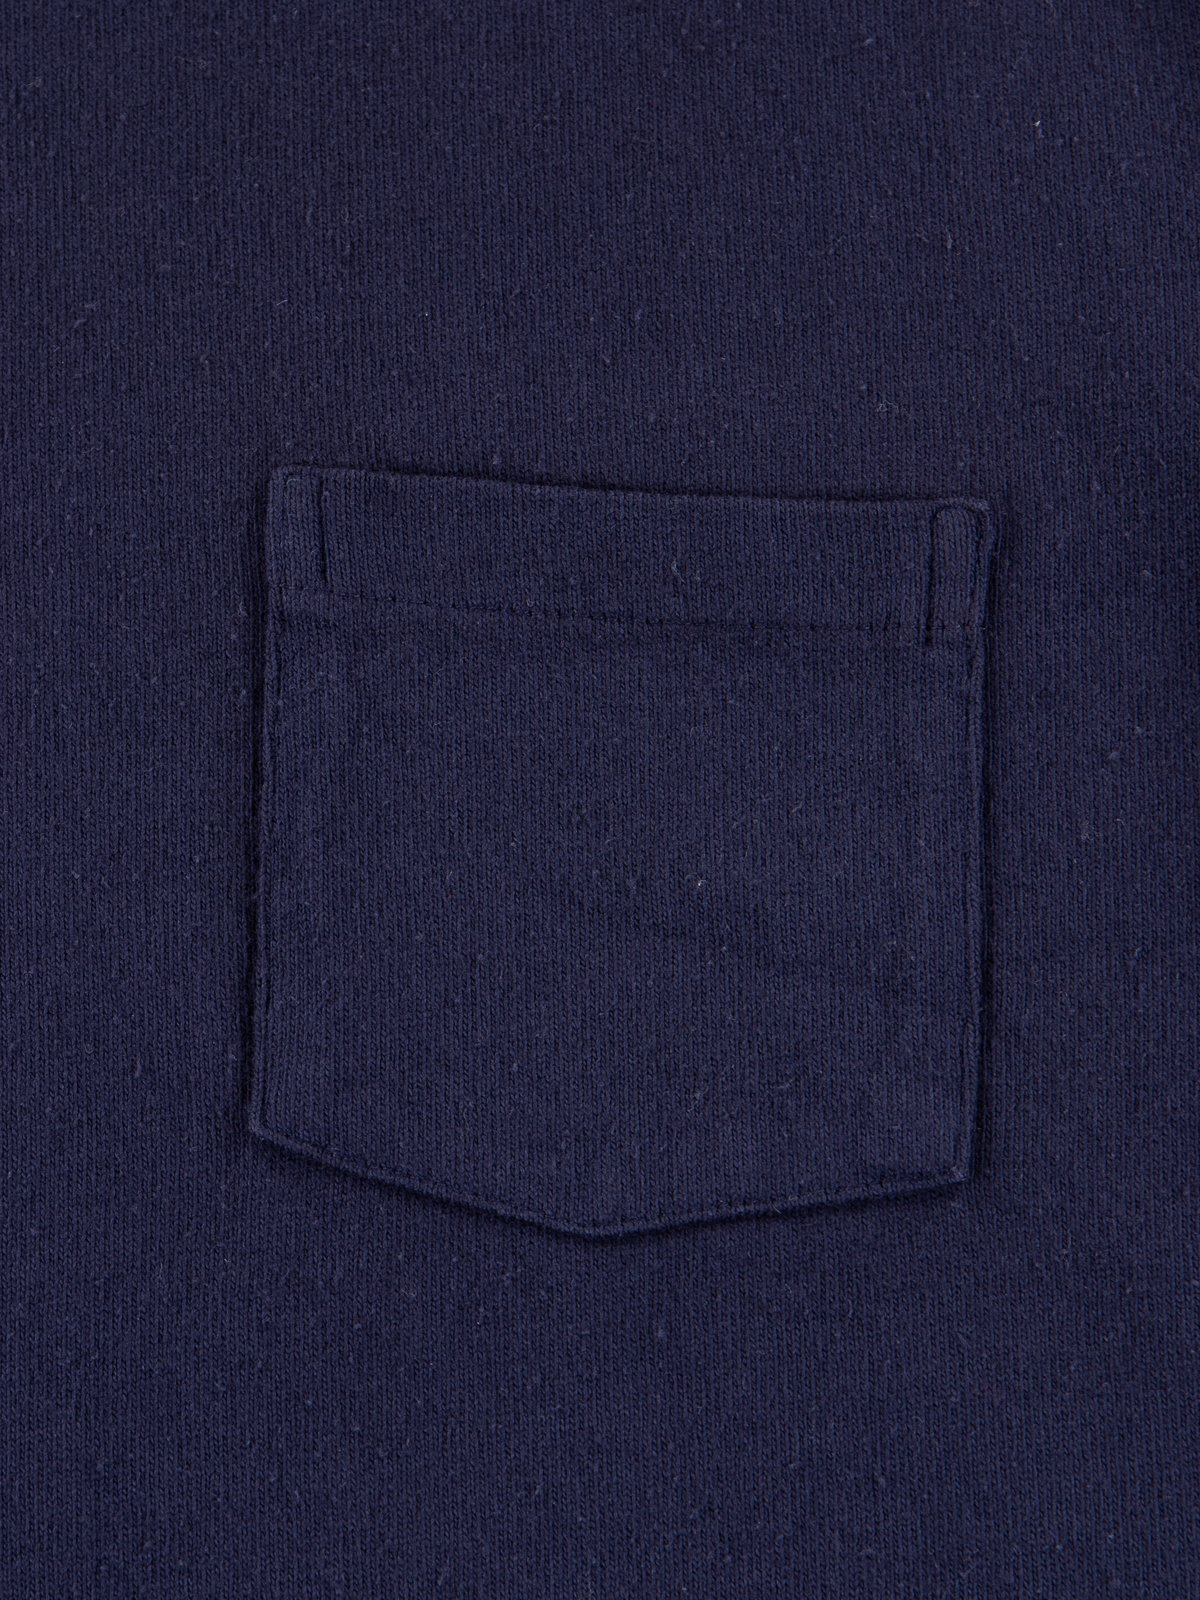 Navy Heavy Oz Pocket Tee - Image 3